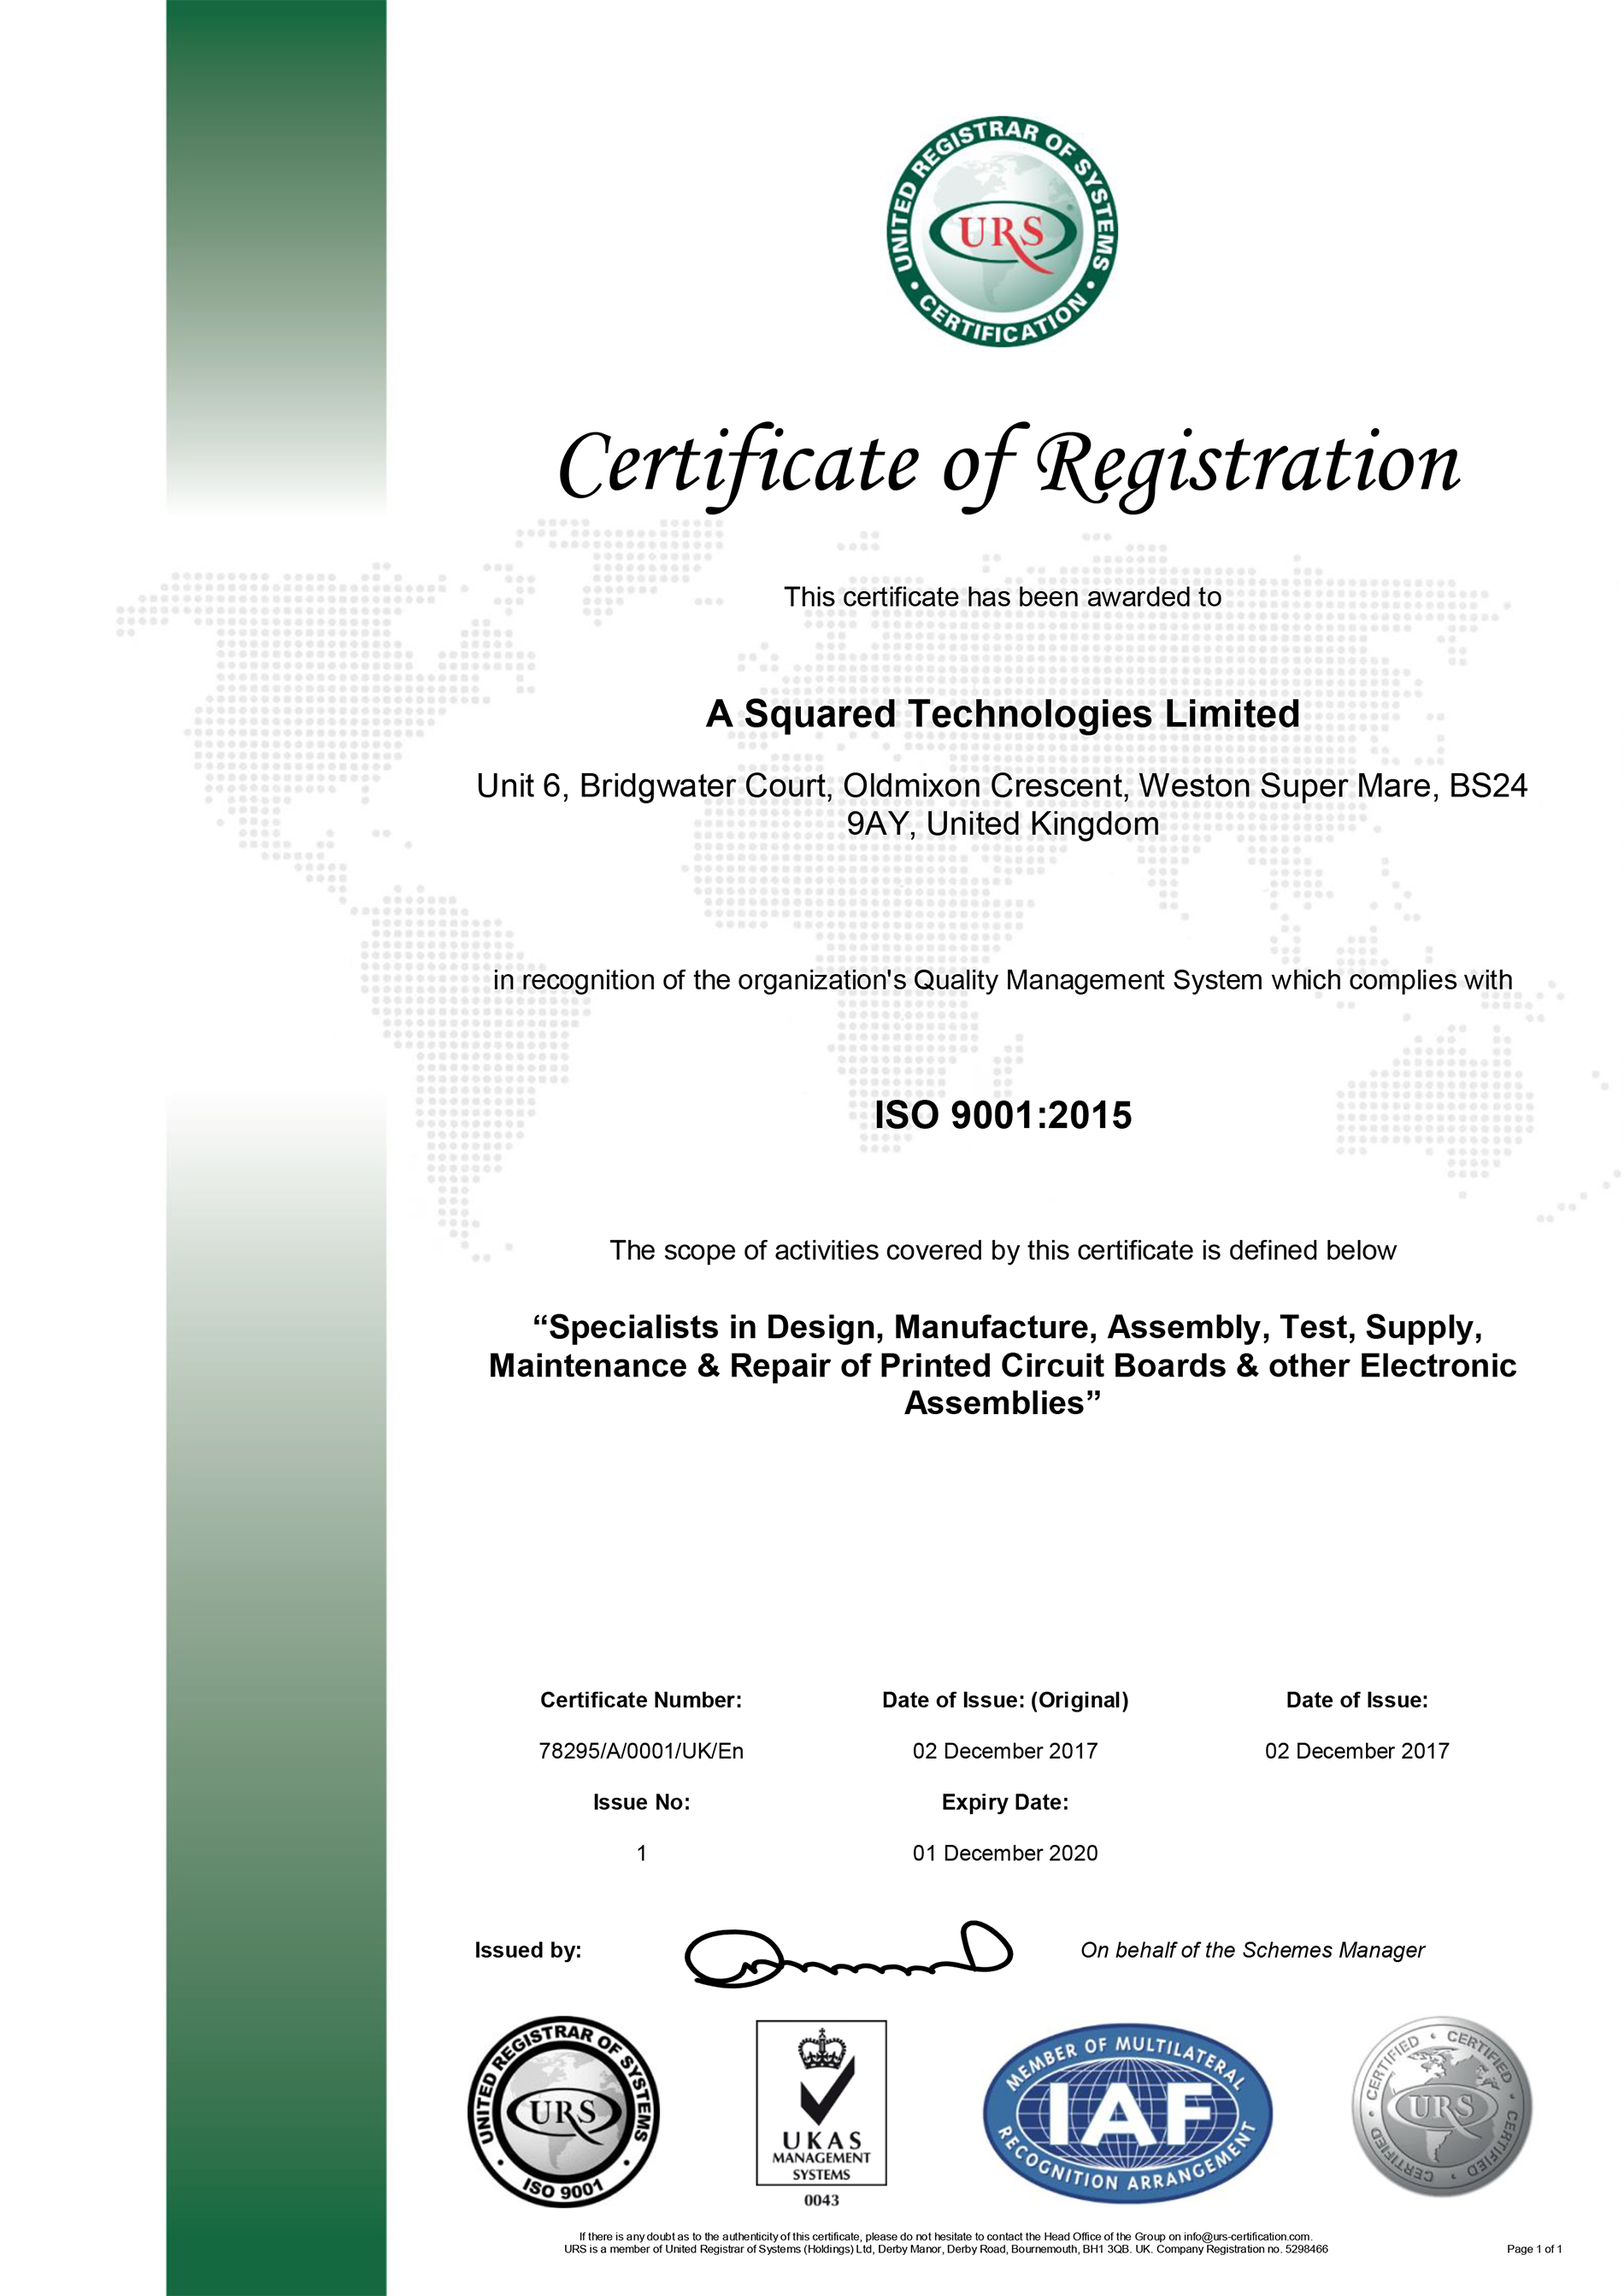 A Squared is an ISO 9001:2015 Accreditied Company!